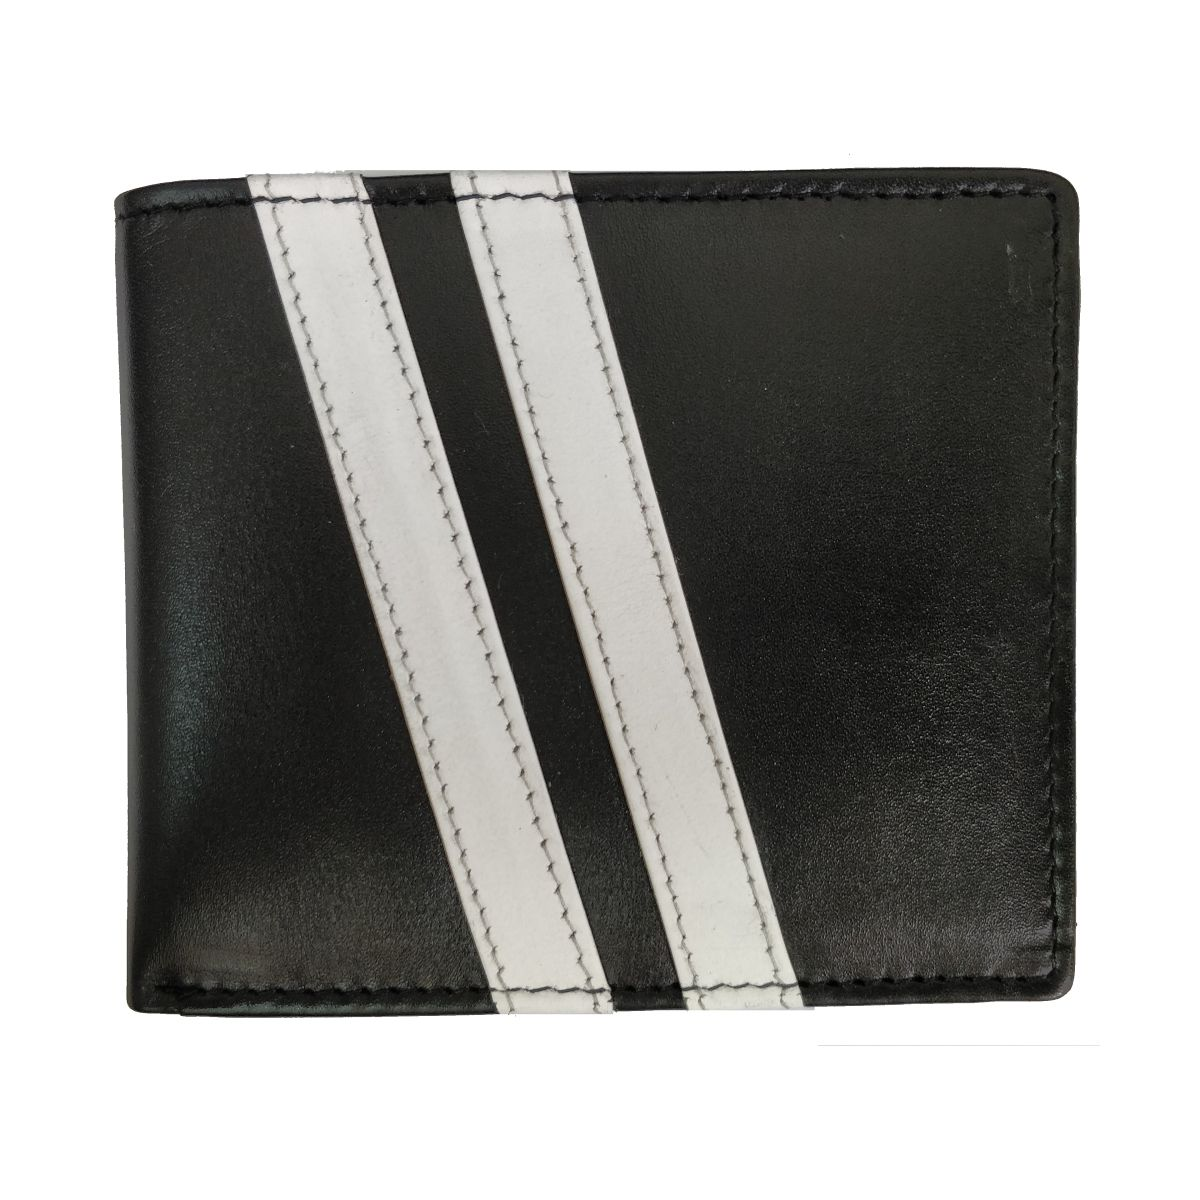 Leather Wallet 2 Strips and Coin Pouch - Black